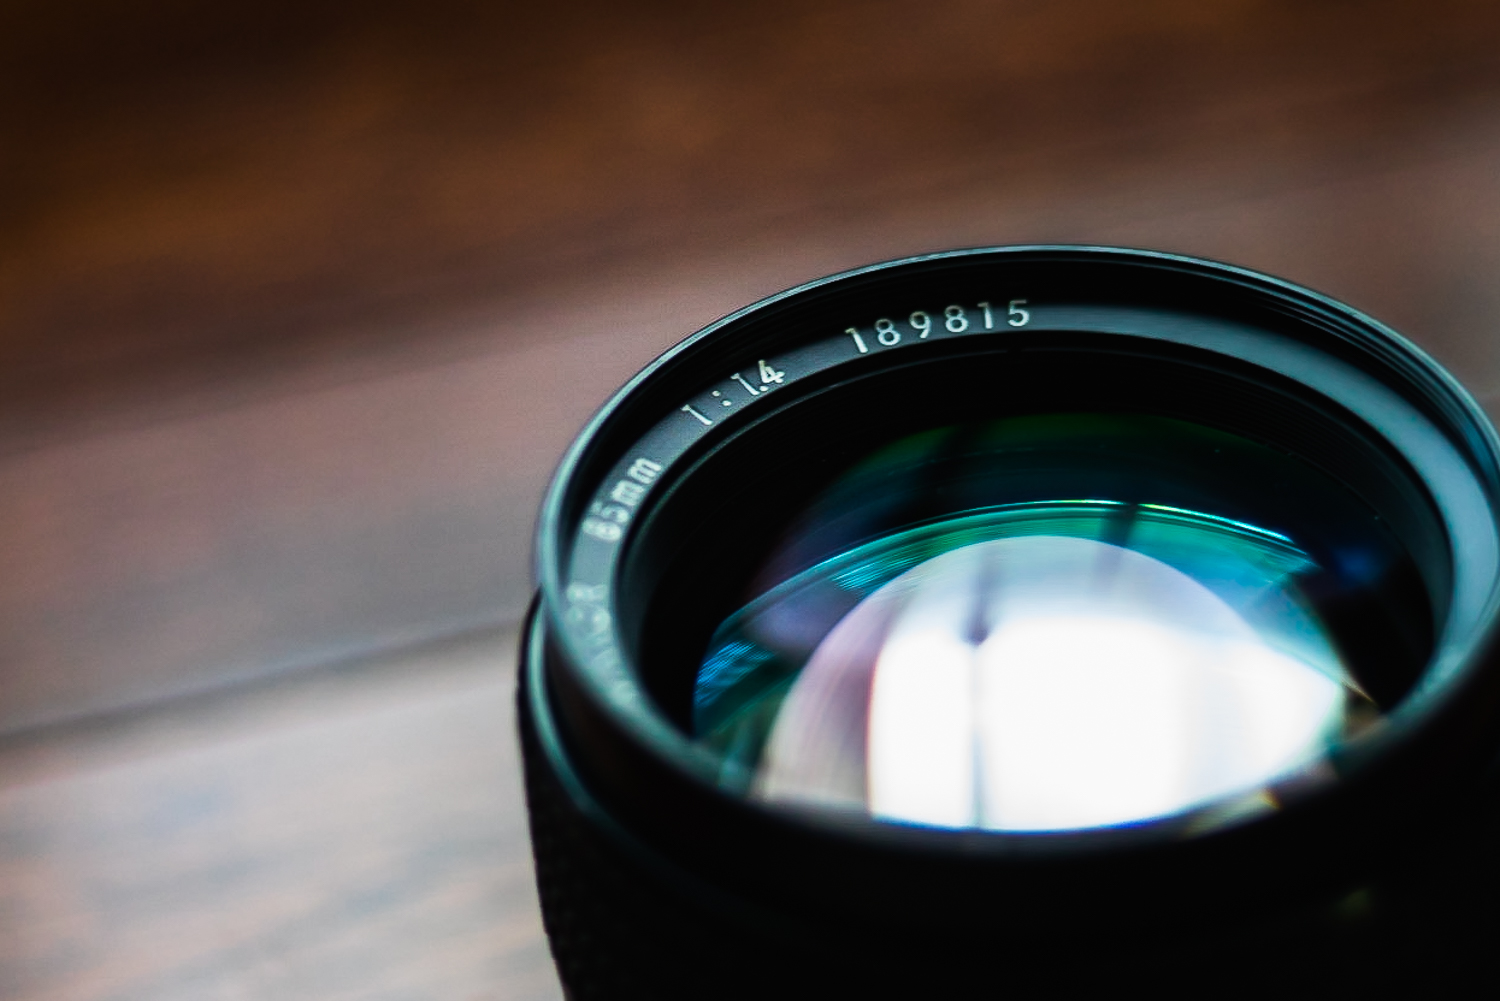 A lens with lens flaws can be viewed as an asset